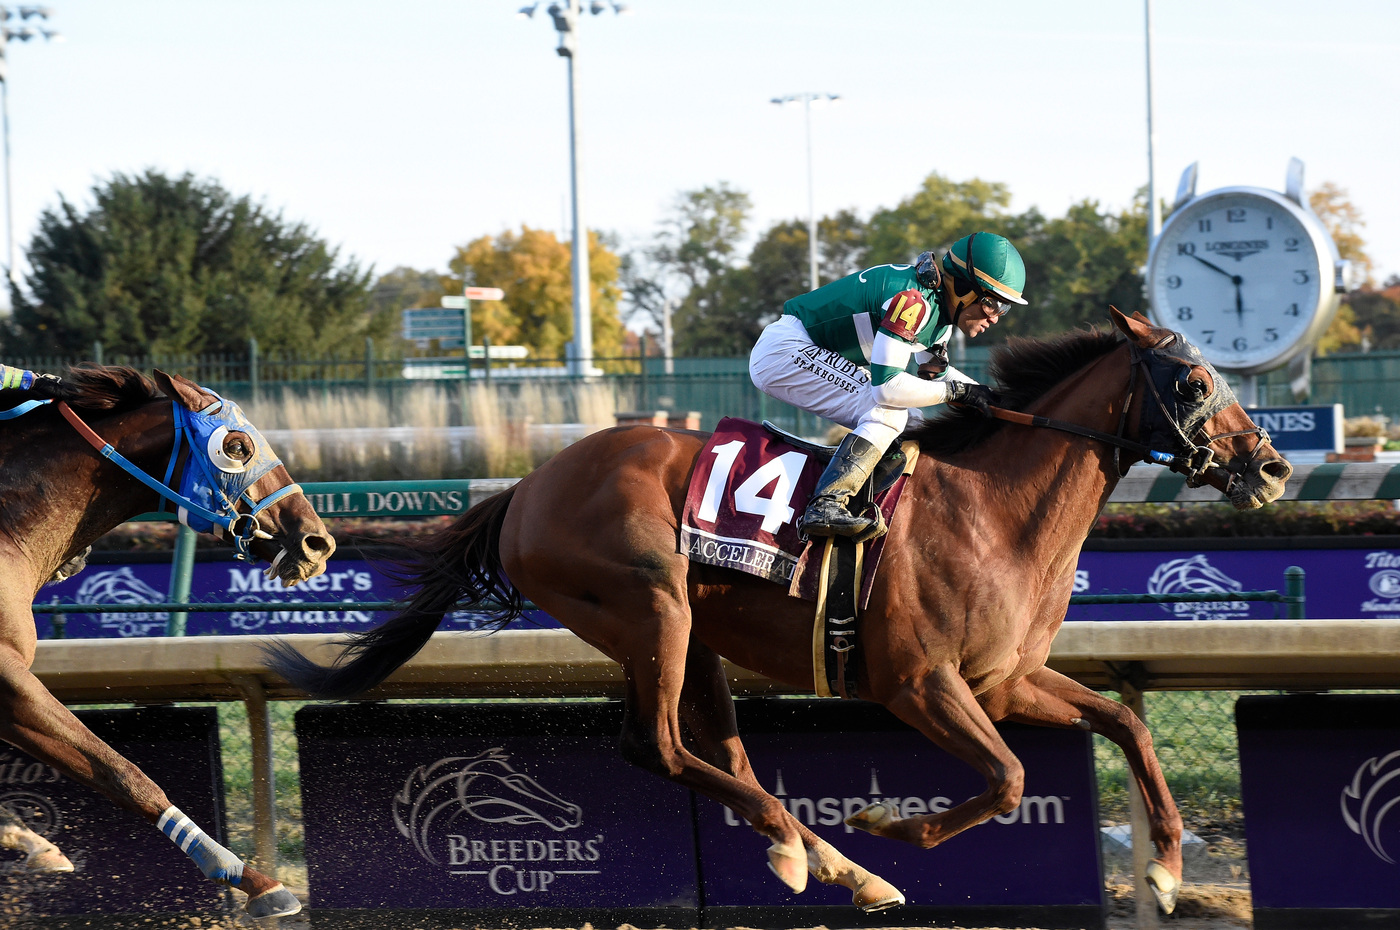 Longines Flat Racing Event: Longines to extend its partnership with the Breeders' Cup 2